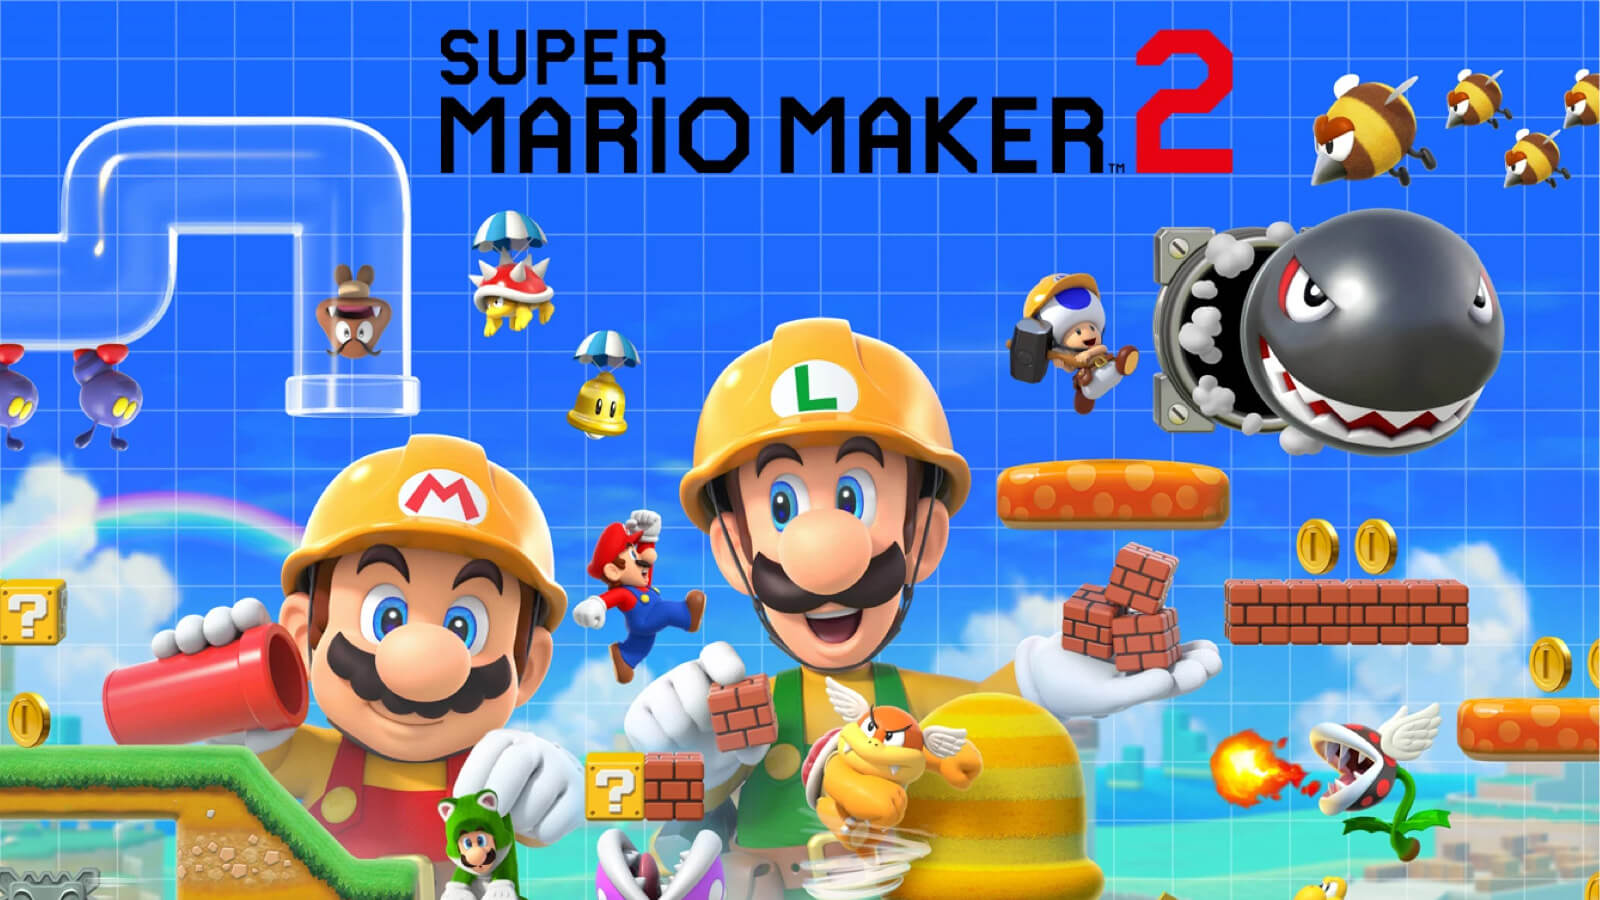 Super Mario Maker 2 Wallpaper Posted By Samantha Cunningham